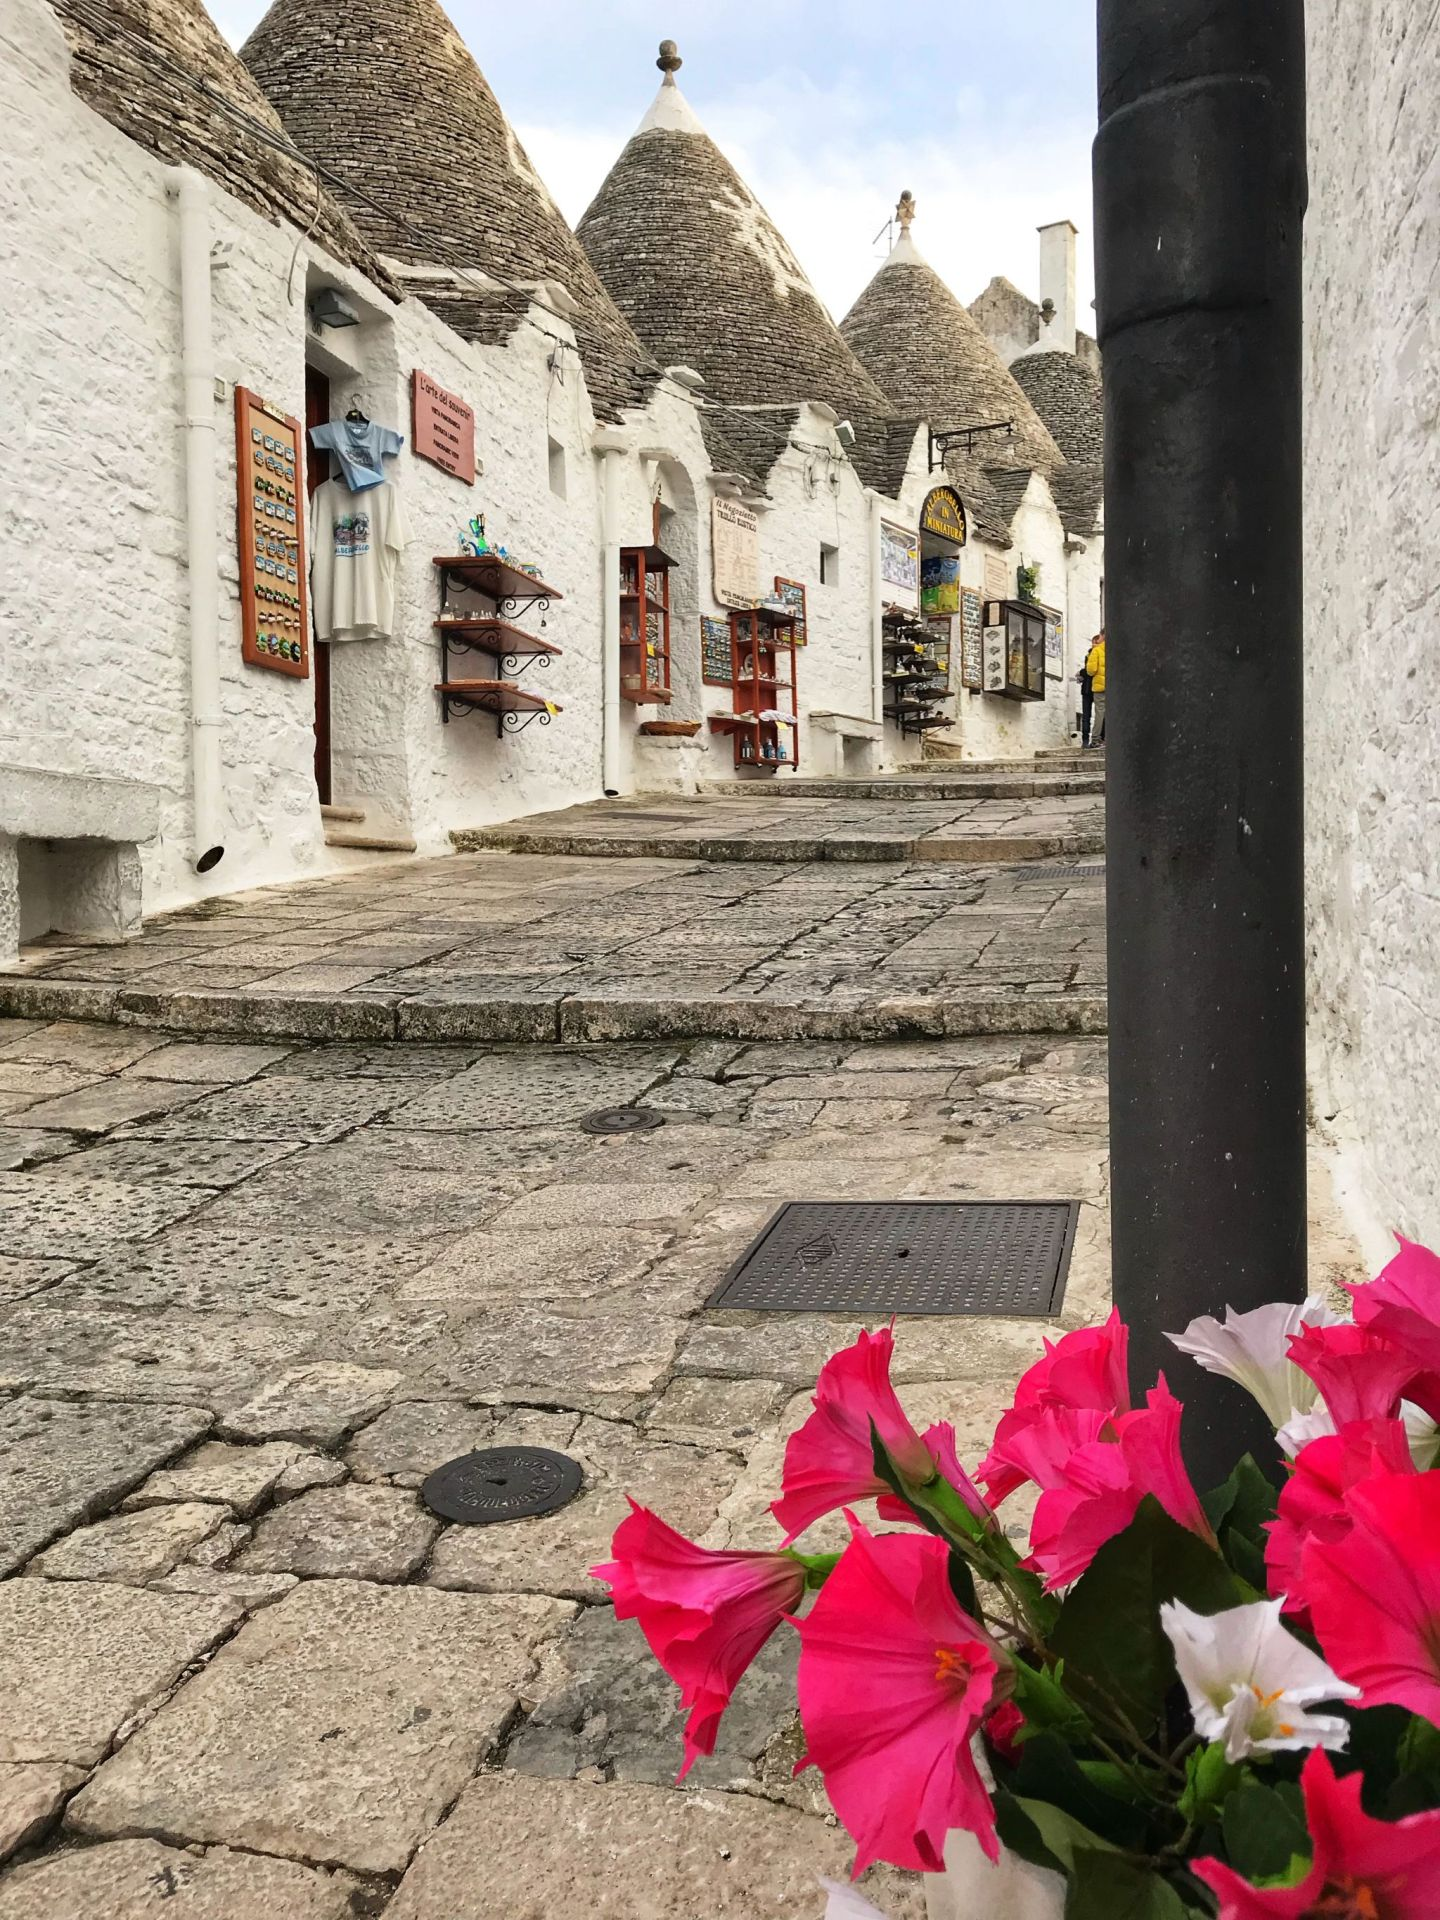 Exploring the scenic streets of Alberobello